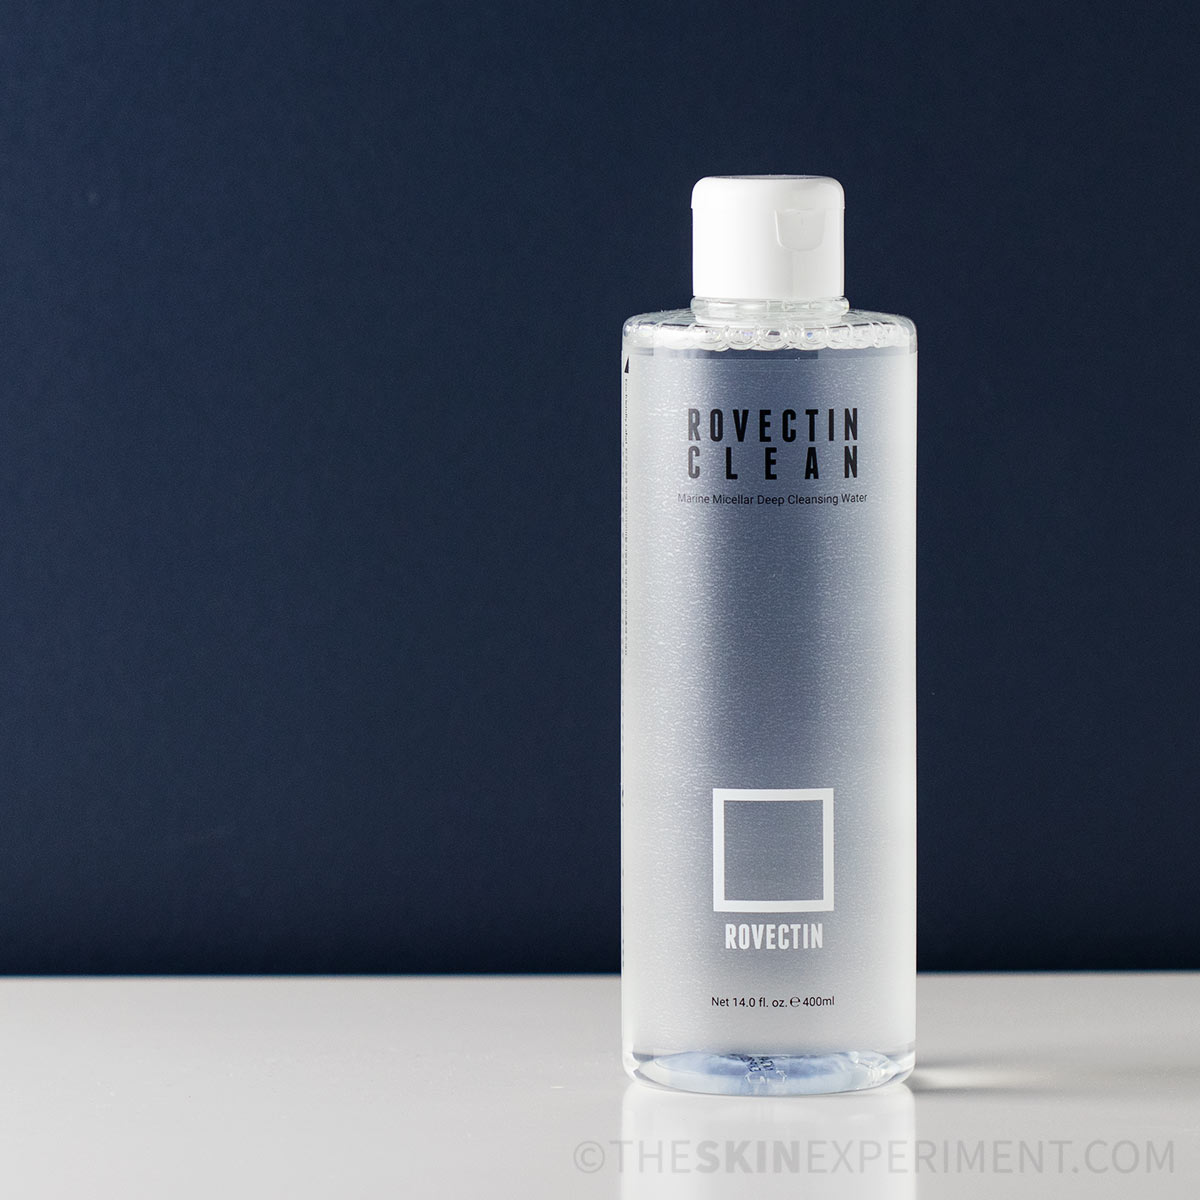 Rovectin Clean Marine Micellar Deep Cleansing Water Review